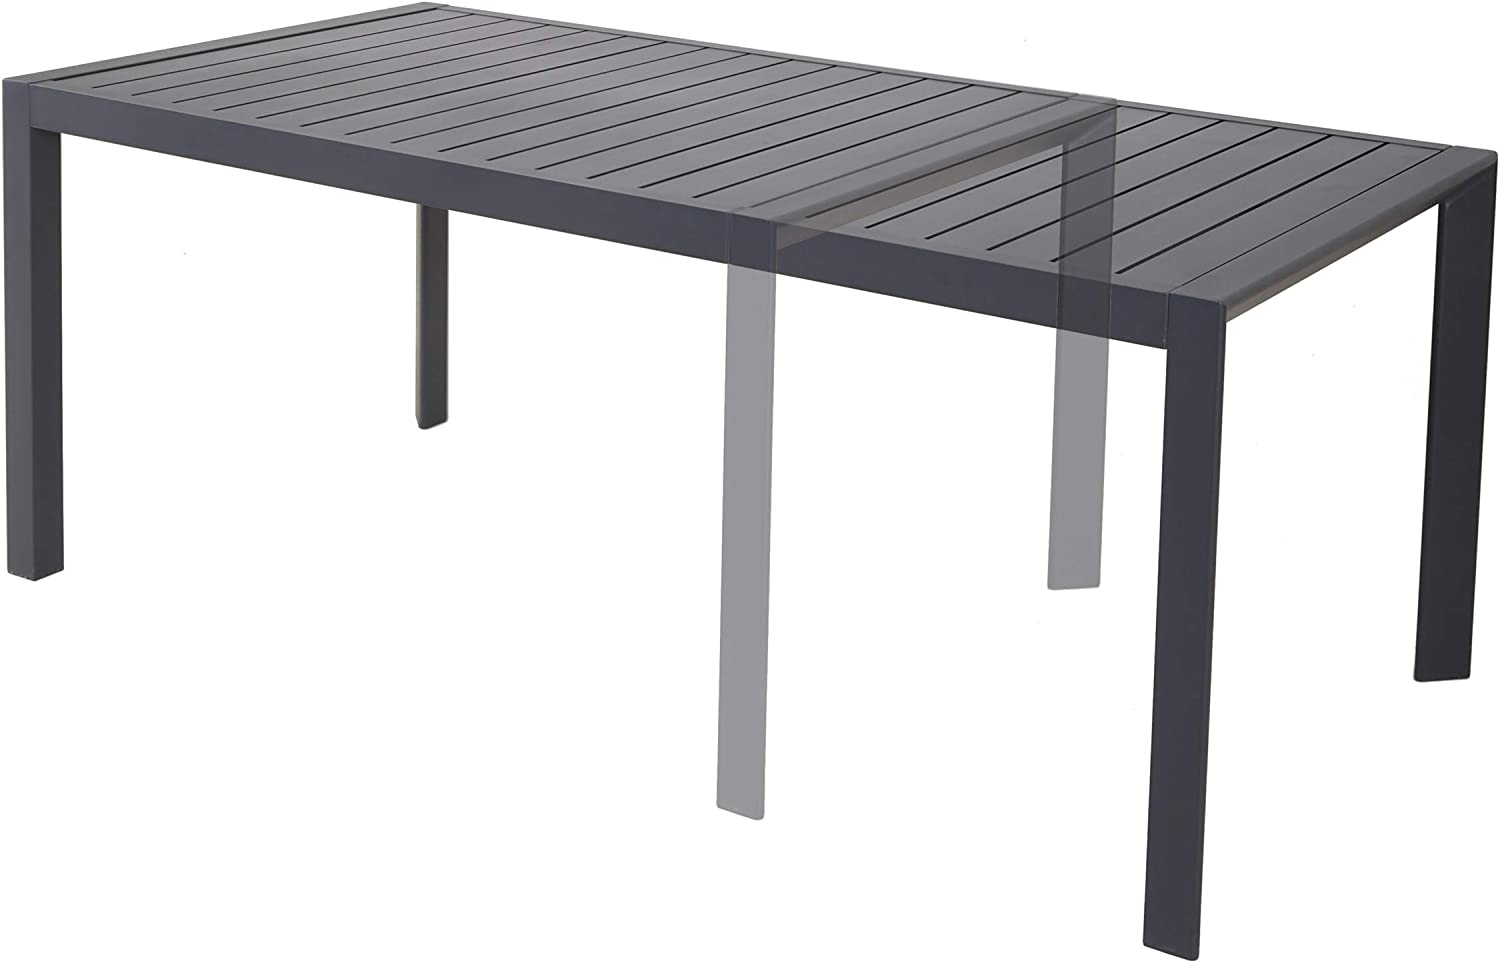 Chicreat - Mesa extensible para exteriores, 180 x 90 x 71, 5 cm: Amazon.es: Jardín